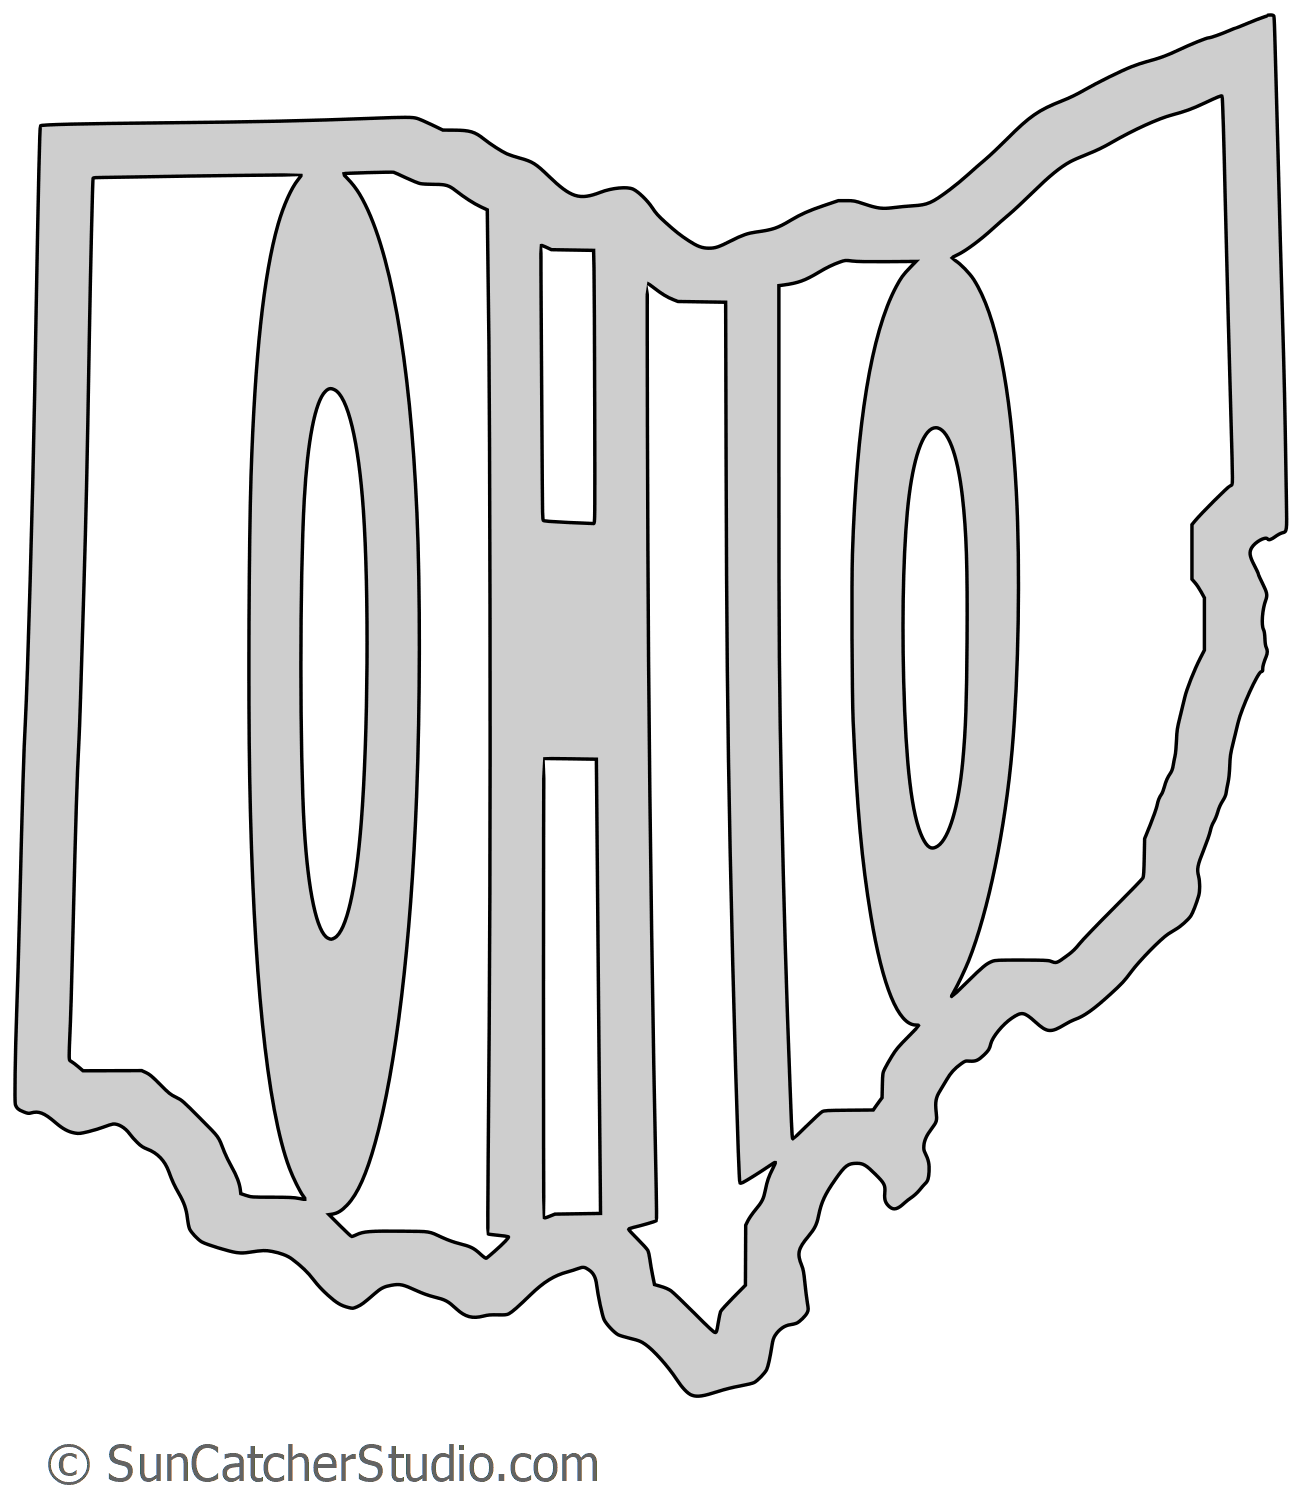 It's just a picture of Sassy Free Printable Ohio Will Forms